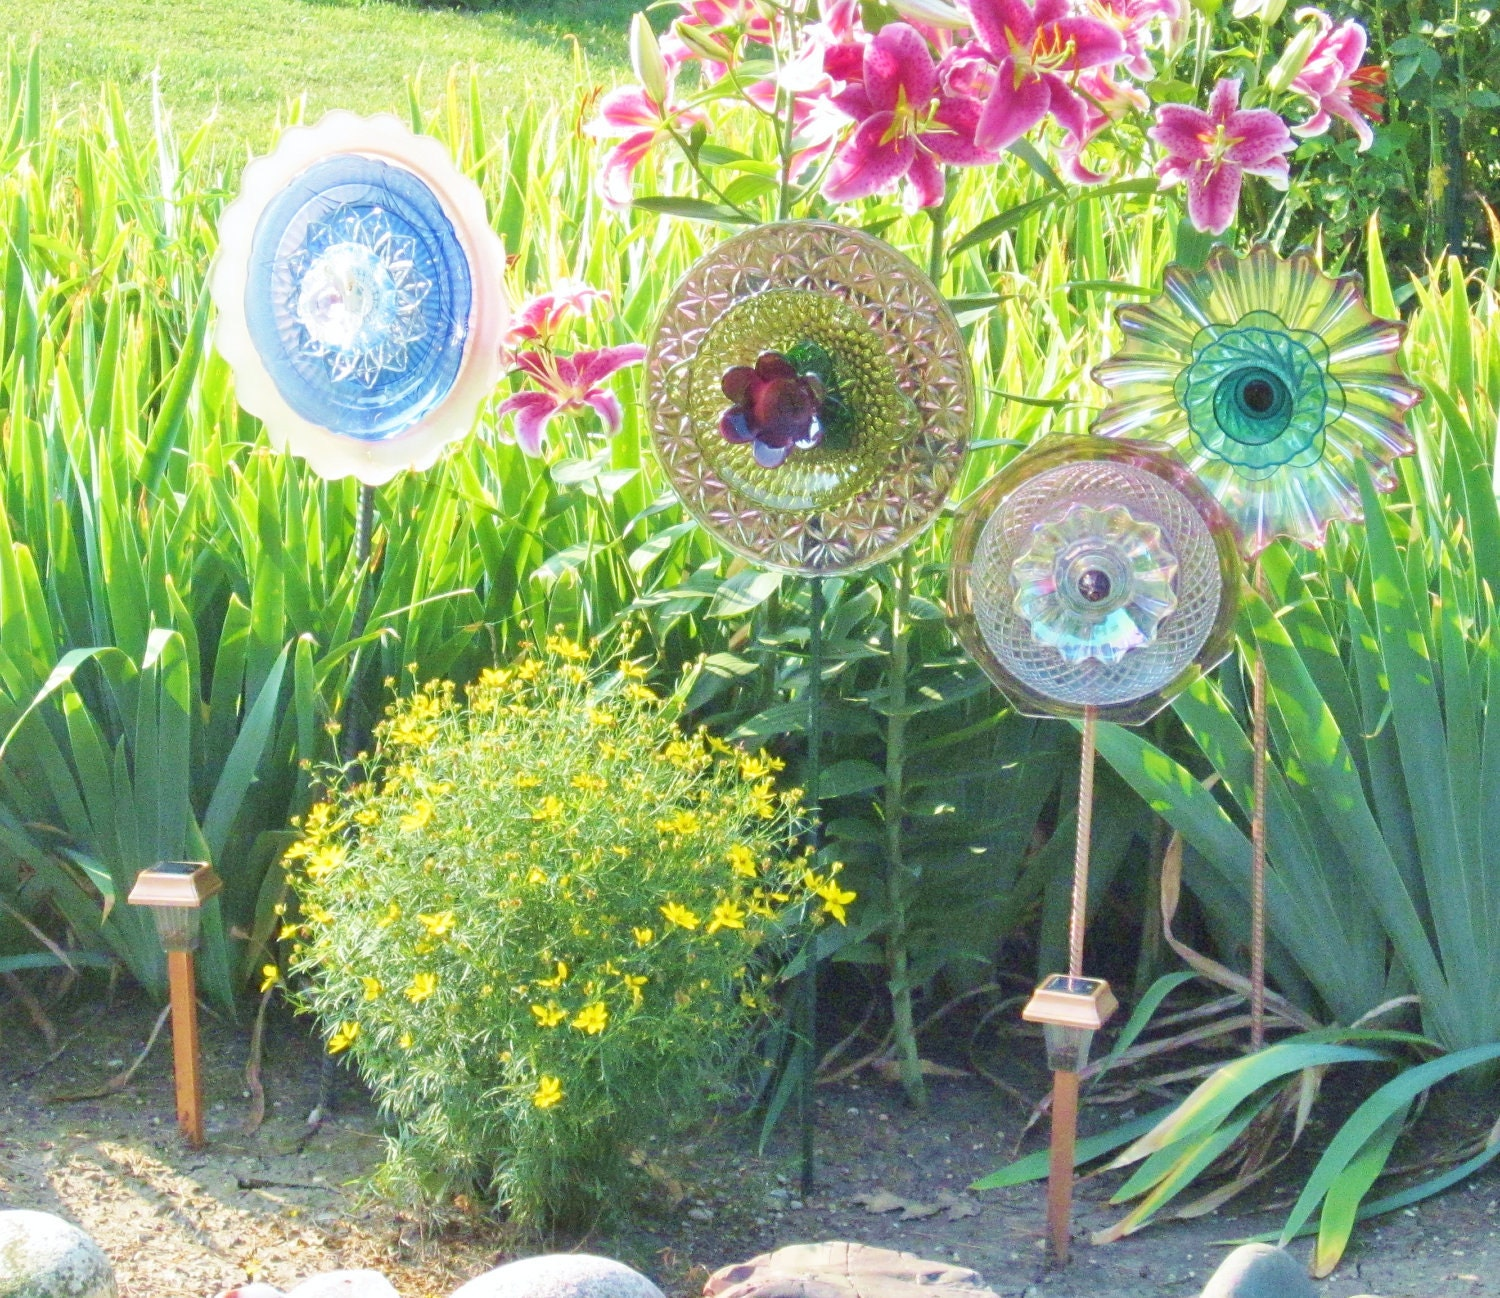 Garden flower outdoor decor recycled glass plate by jarmfarm for Flower garden decorations